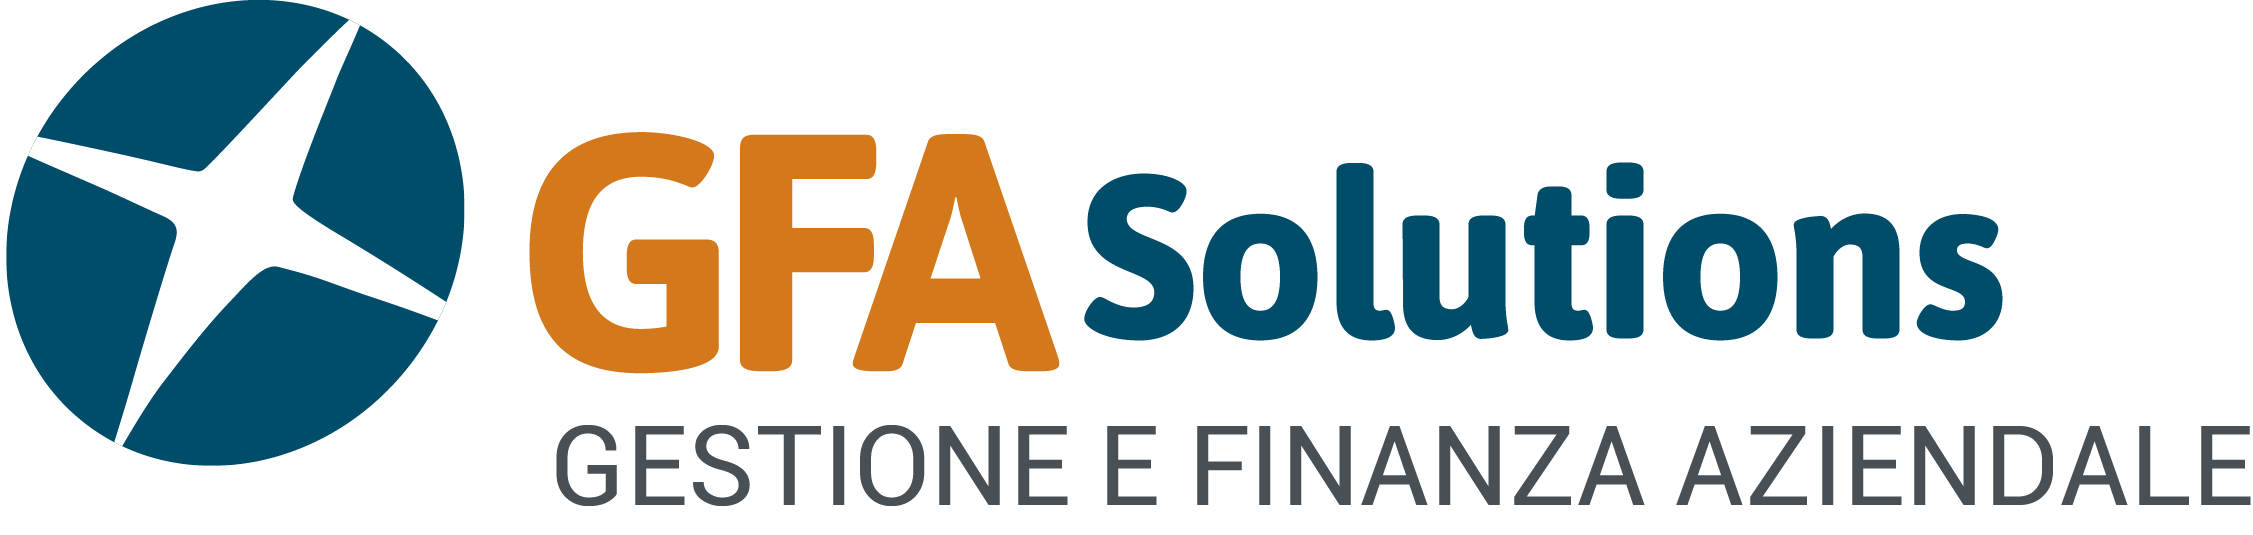 GFA Solution Research